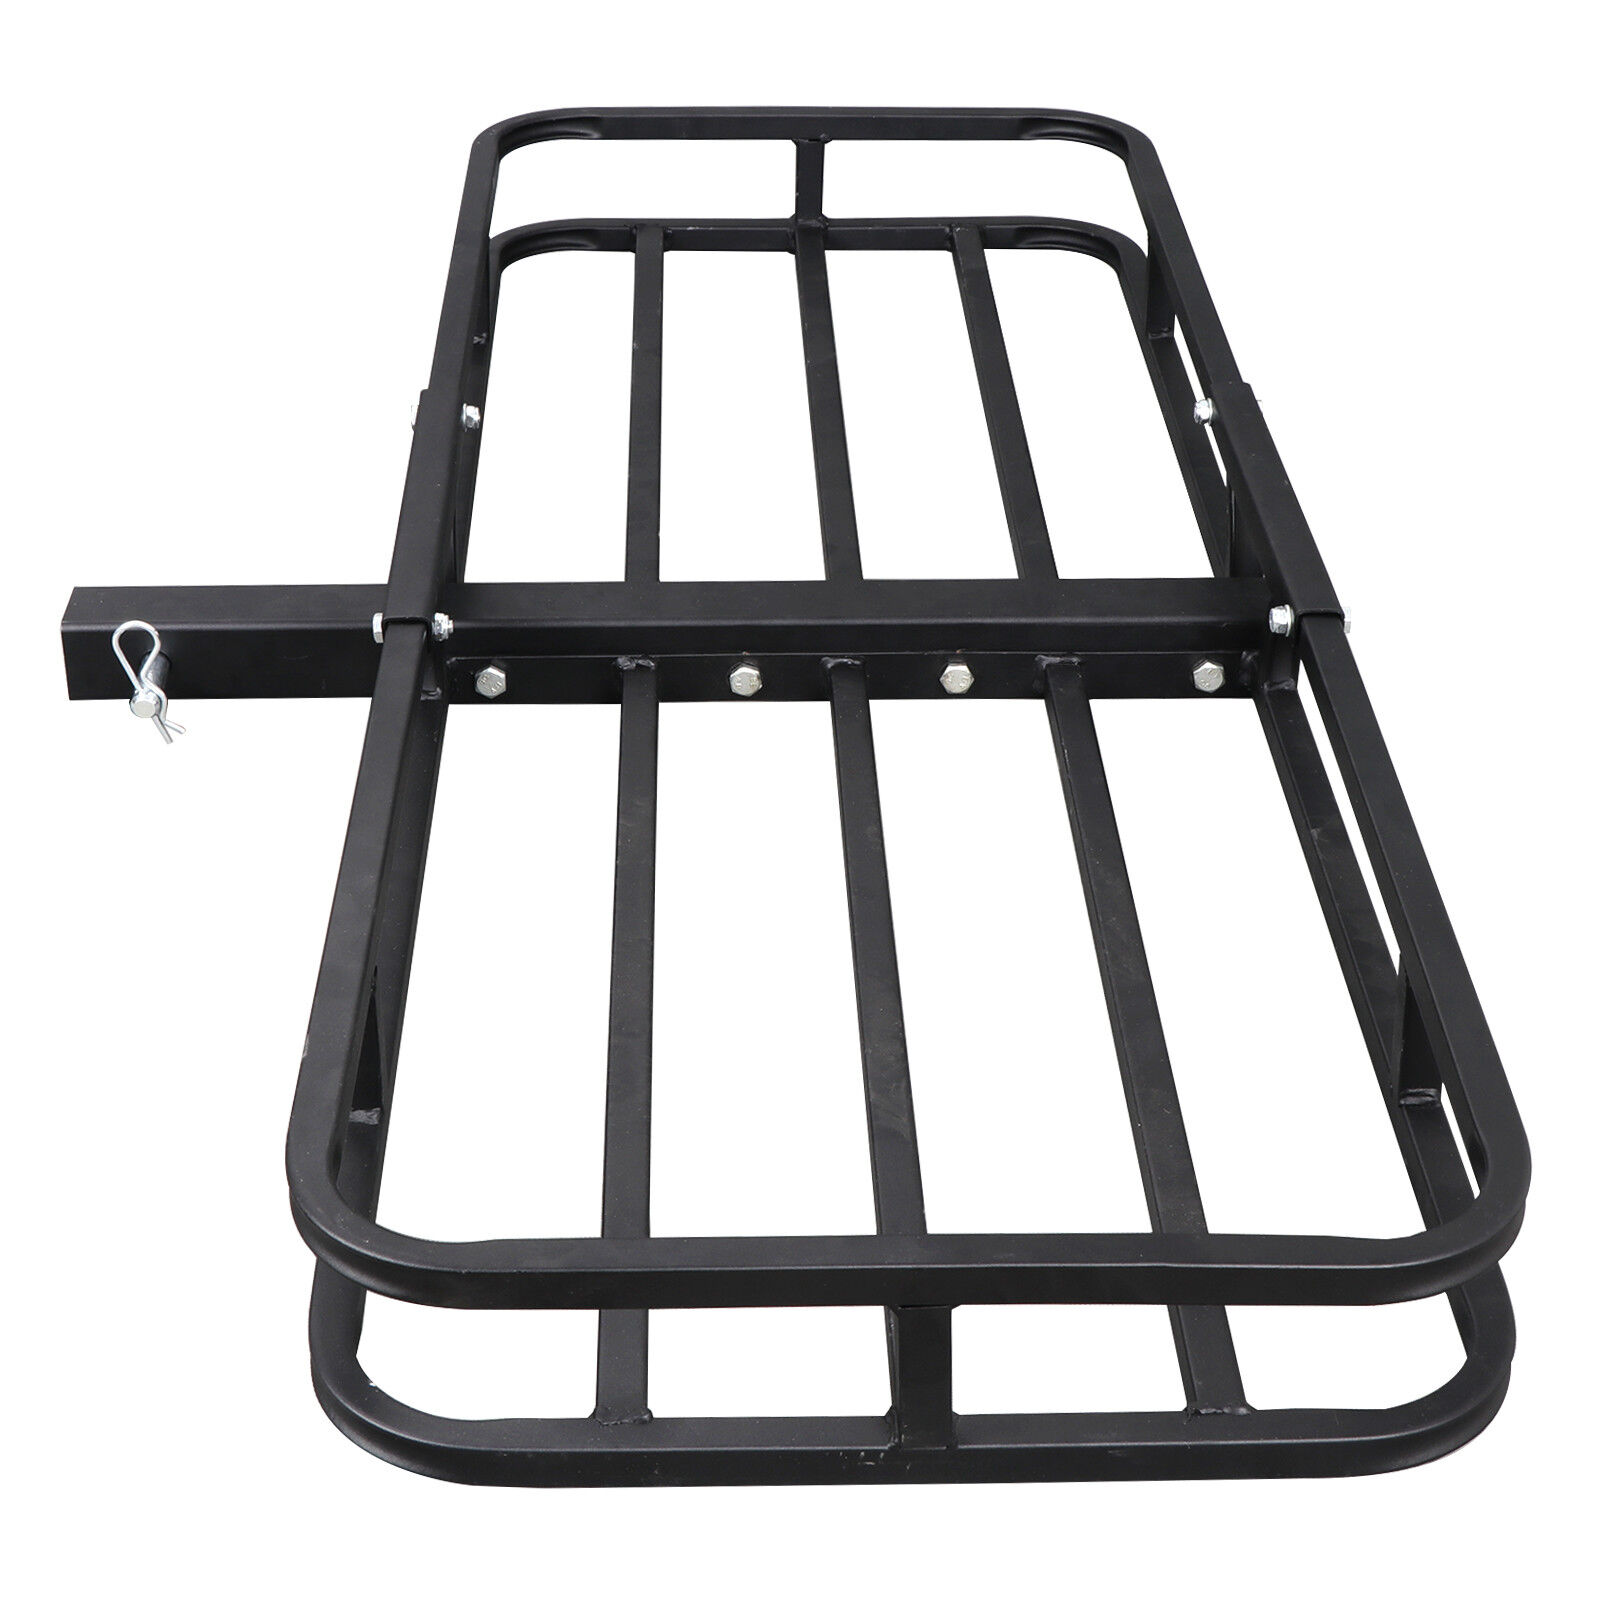 53″x19″ Carrier Basket Rack Hitch Mount Cargo Hauler Luggage 2″ Hitch Receiver Car & Truck Parts